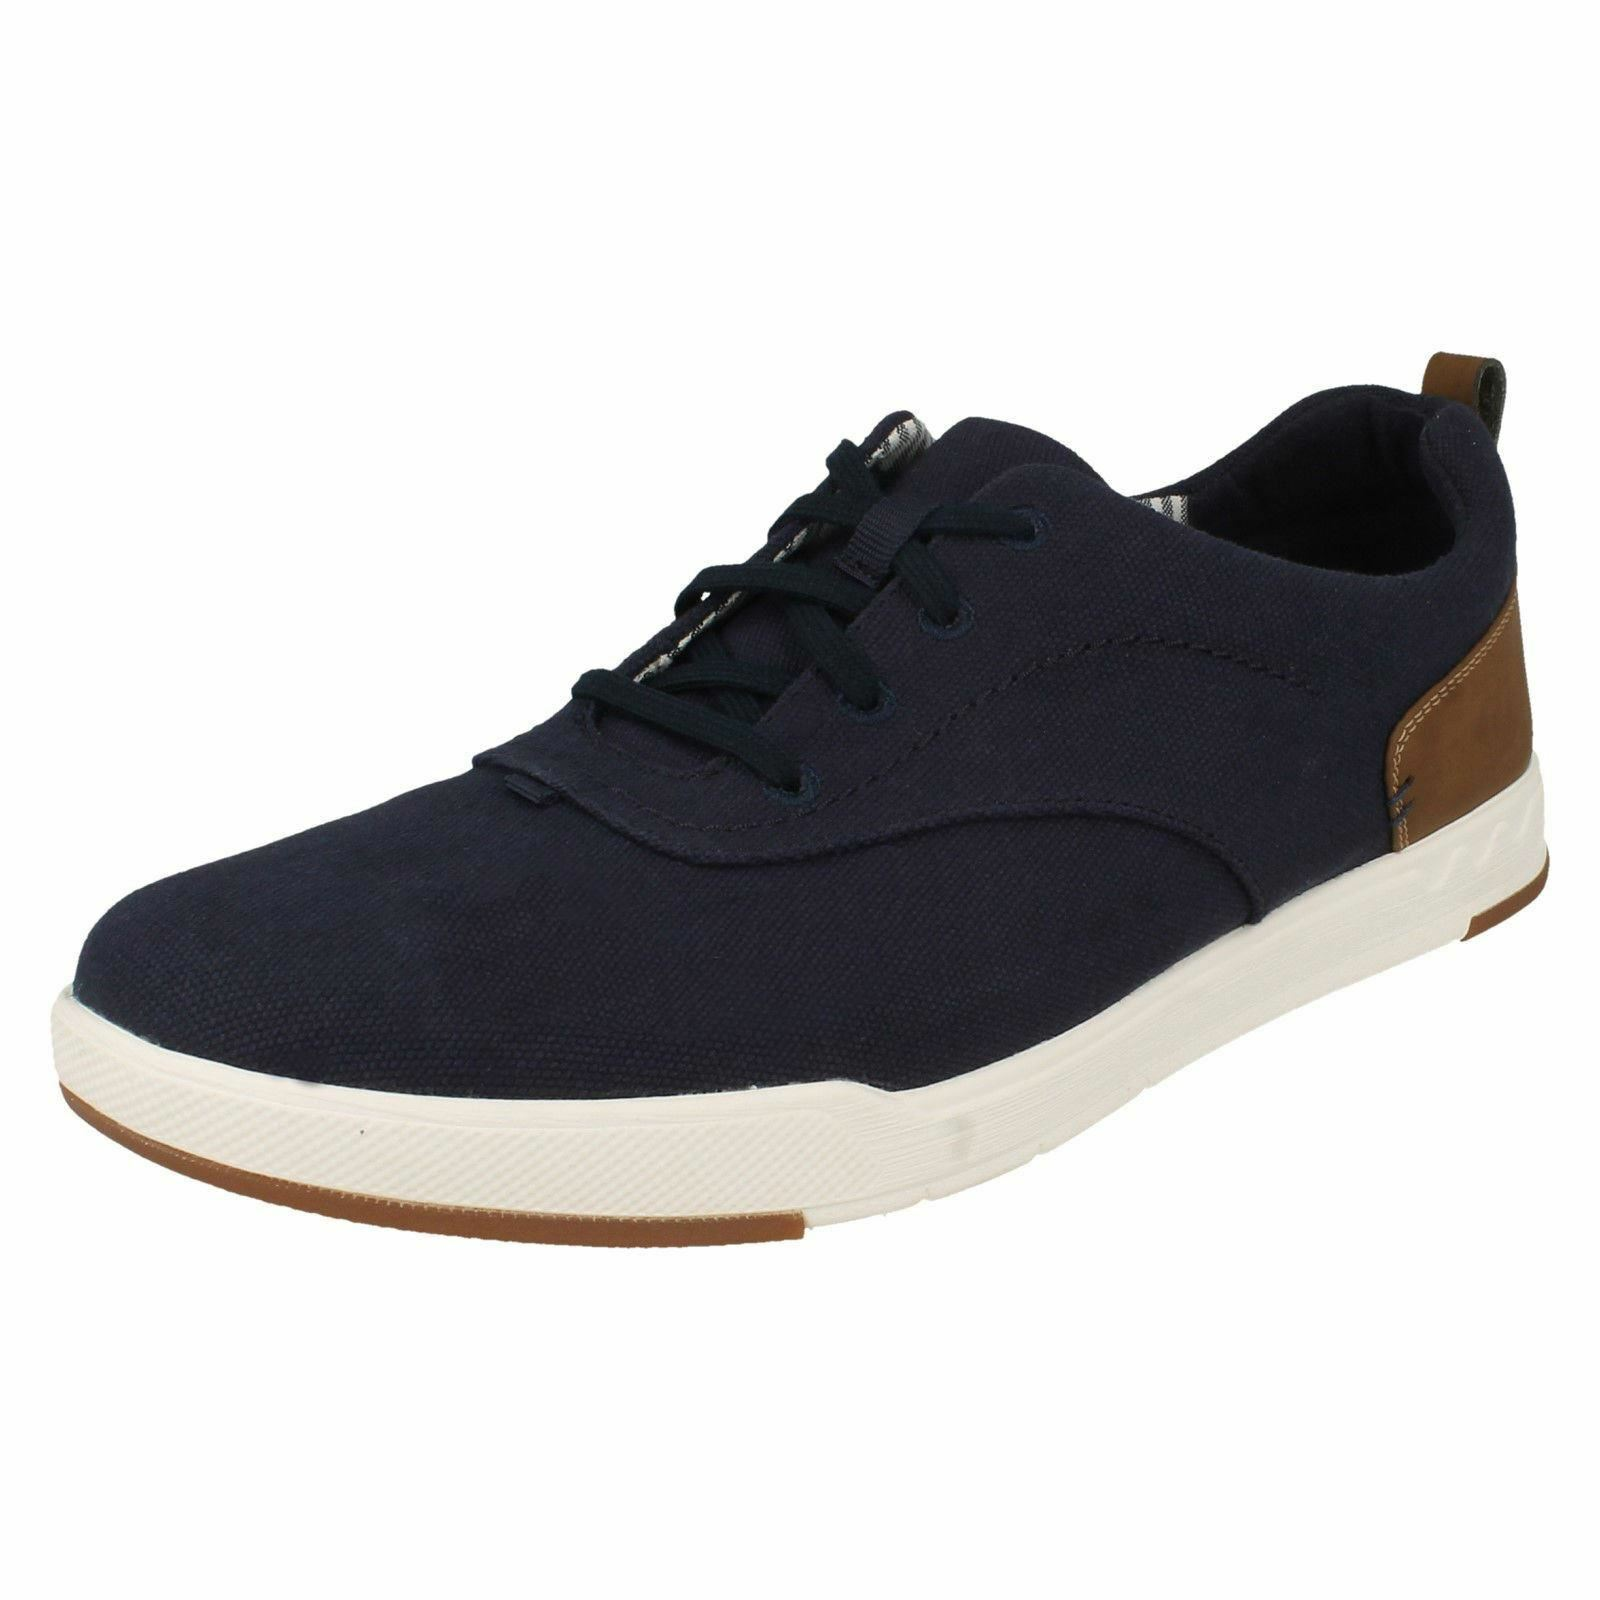 MENS CLARKS STEP ISLE CREW NAVY CANVAS LACE UP